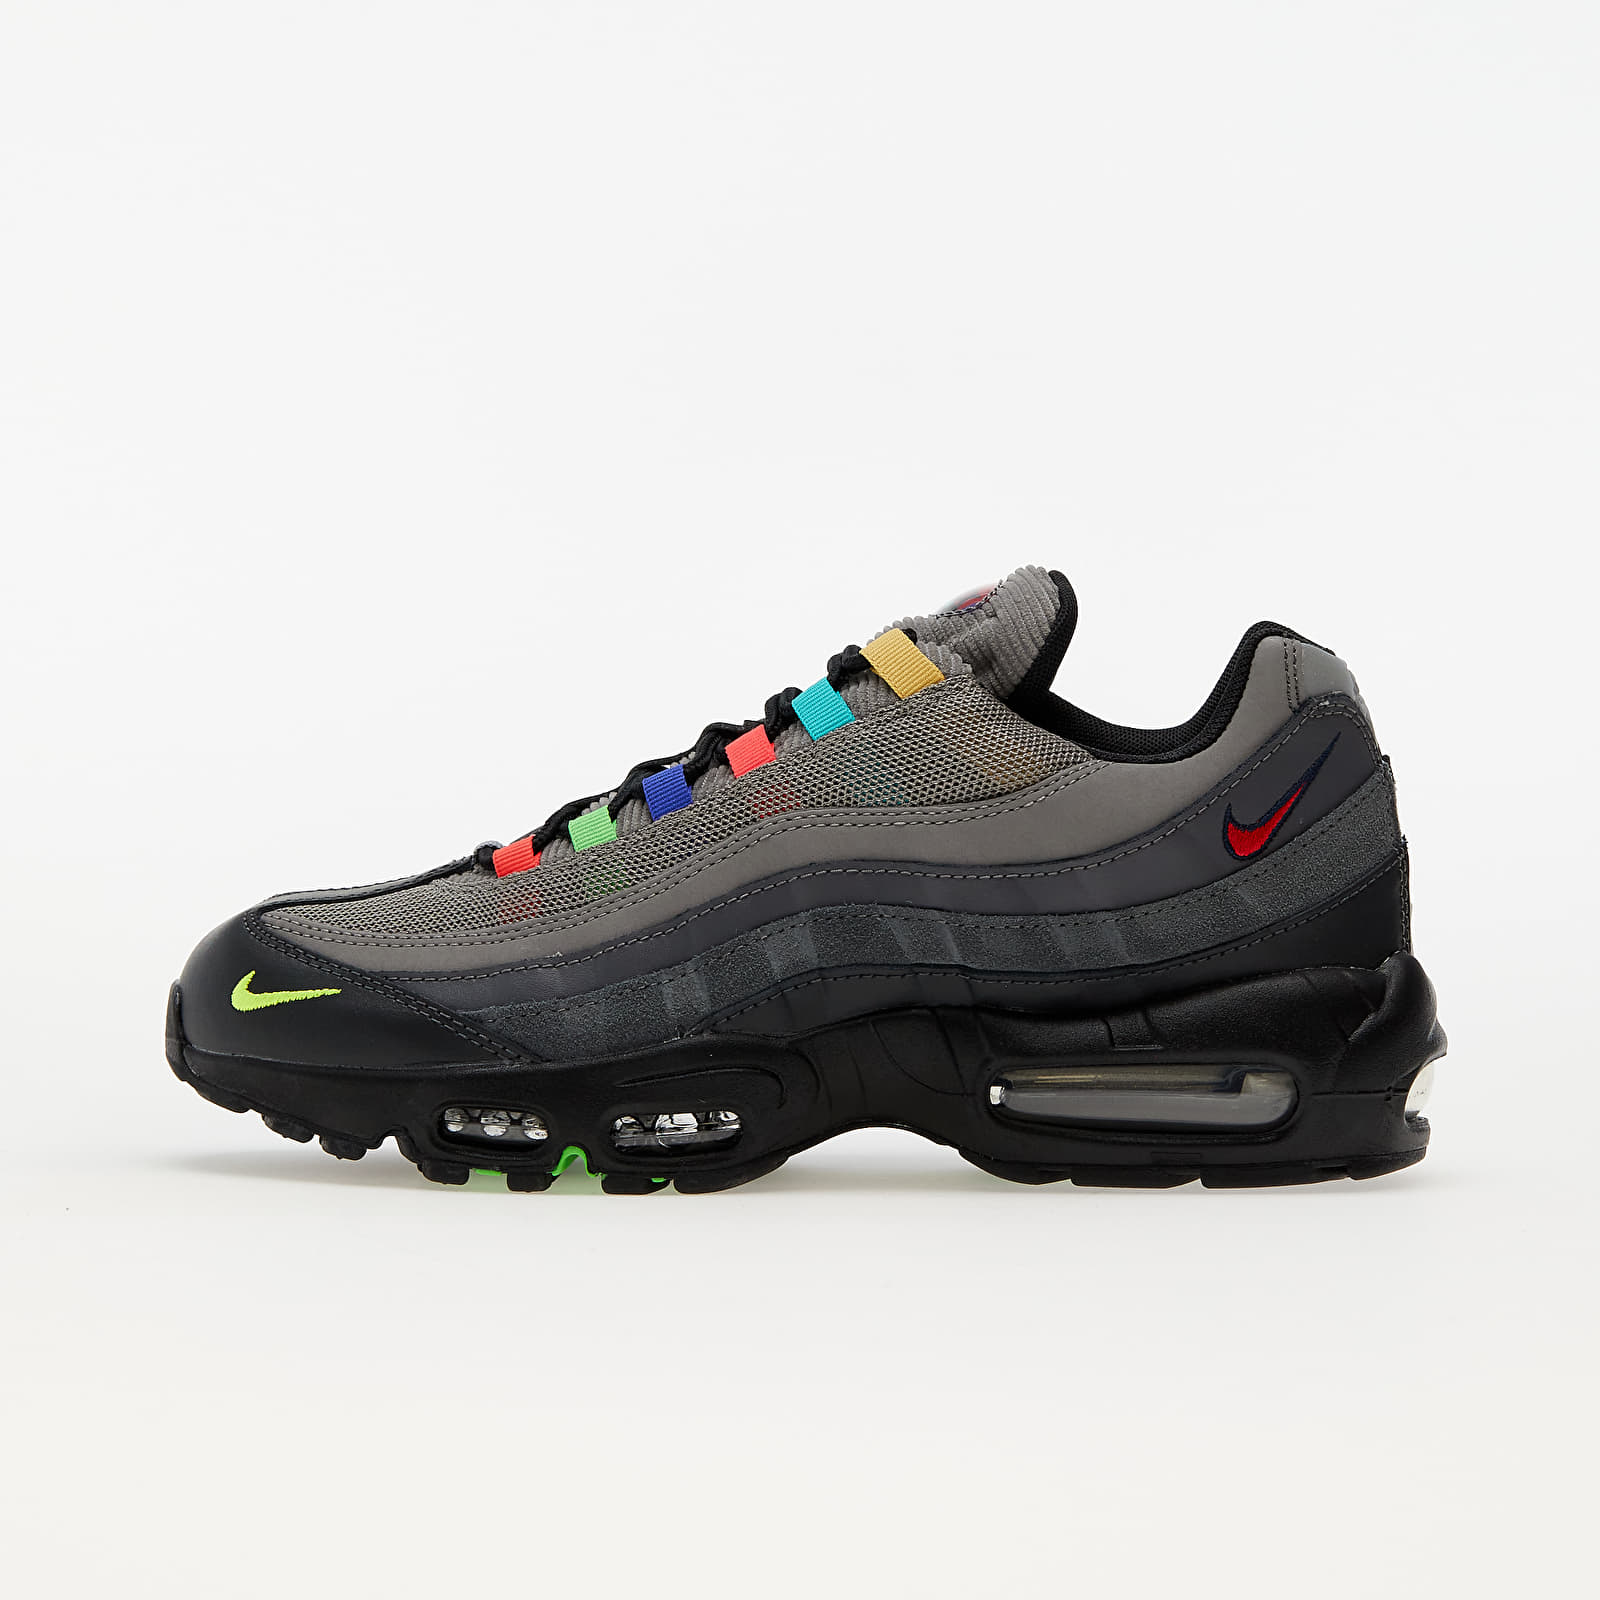 Nike Air Max 95 SE Light Charcoal/ University Red-Black EUR 45.5